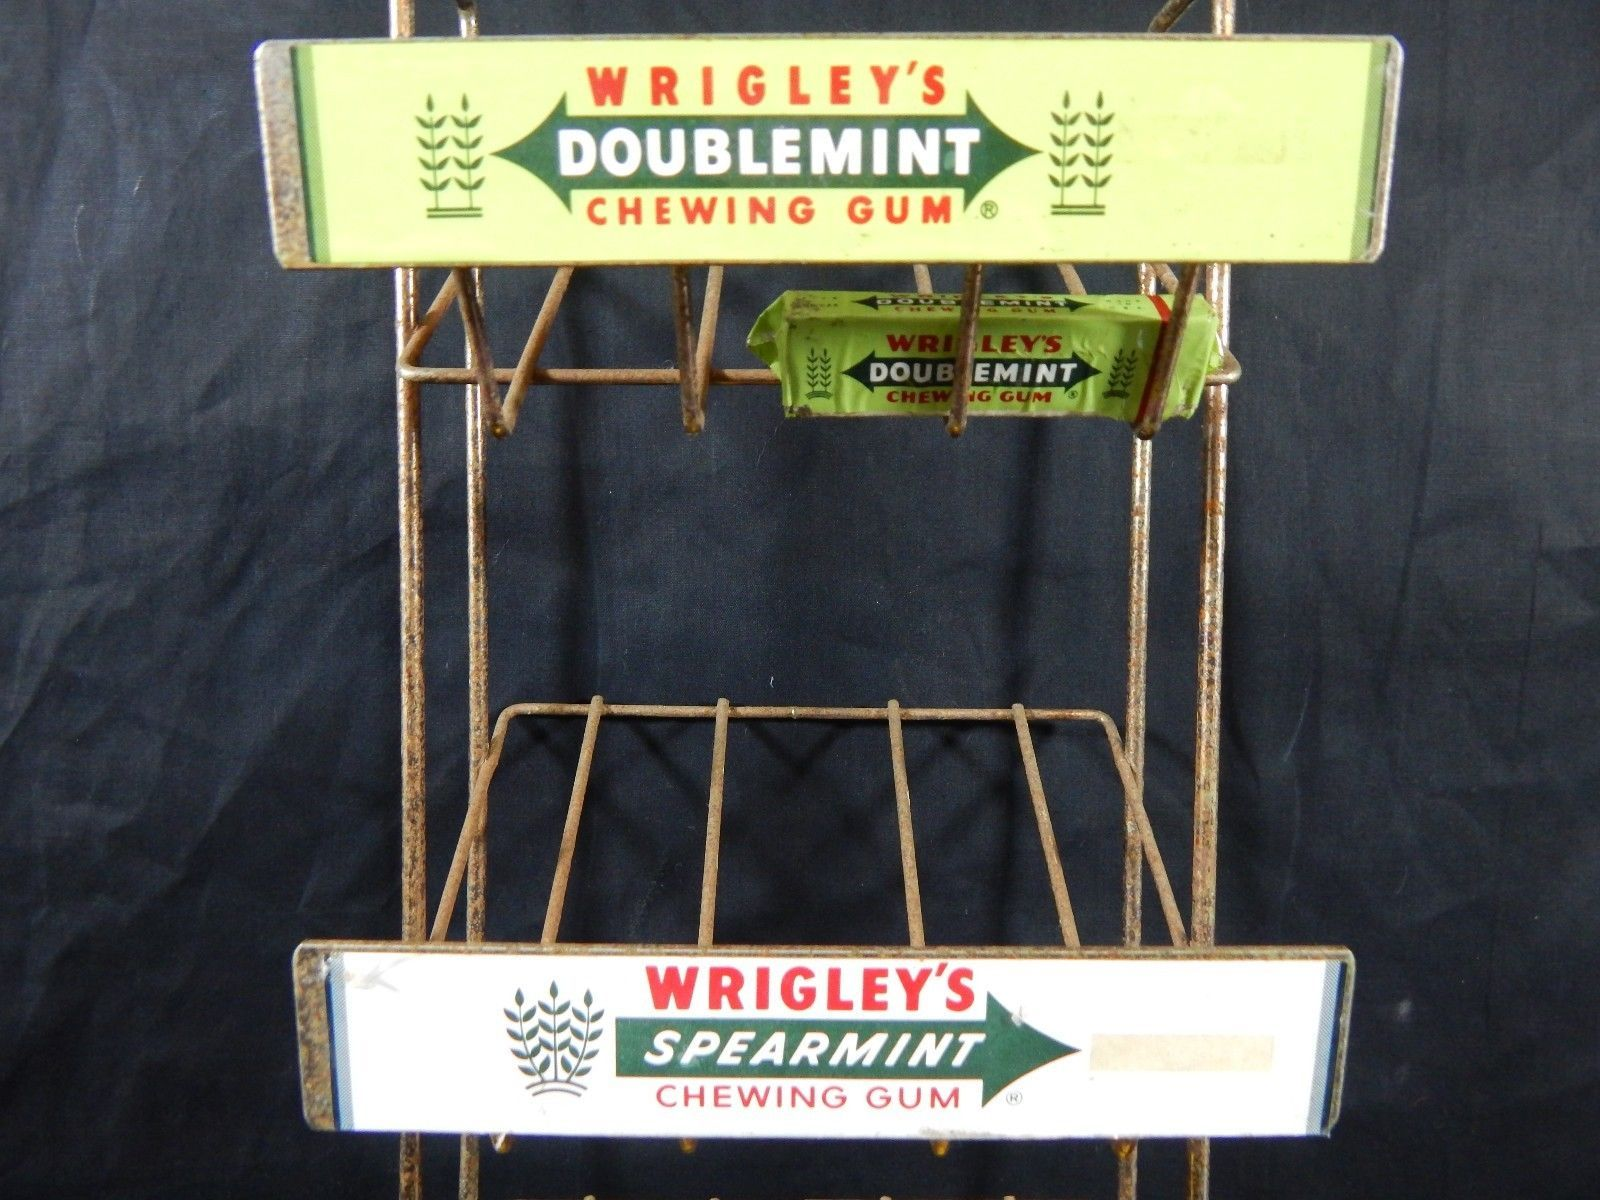 Countertop Signs Wrigley S Chewing Gum Counter Top Display Advertising Sign Rack